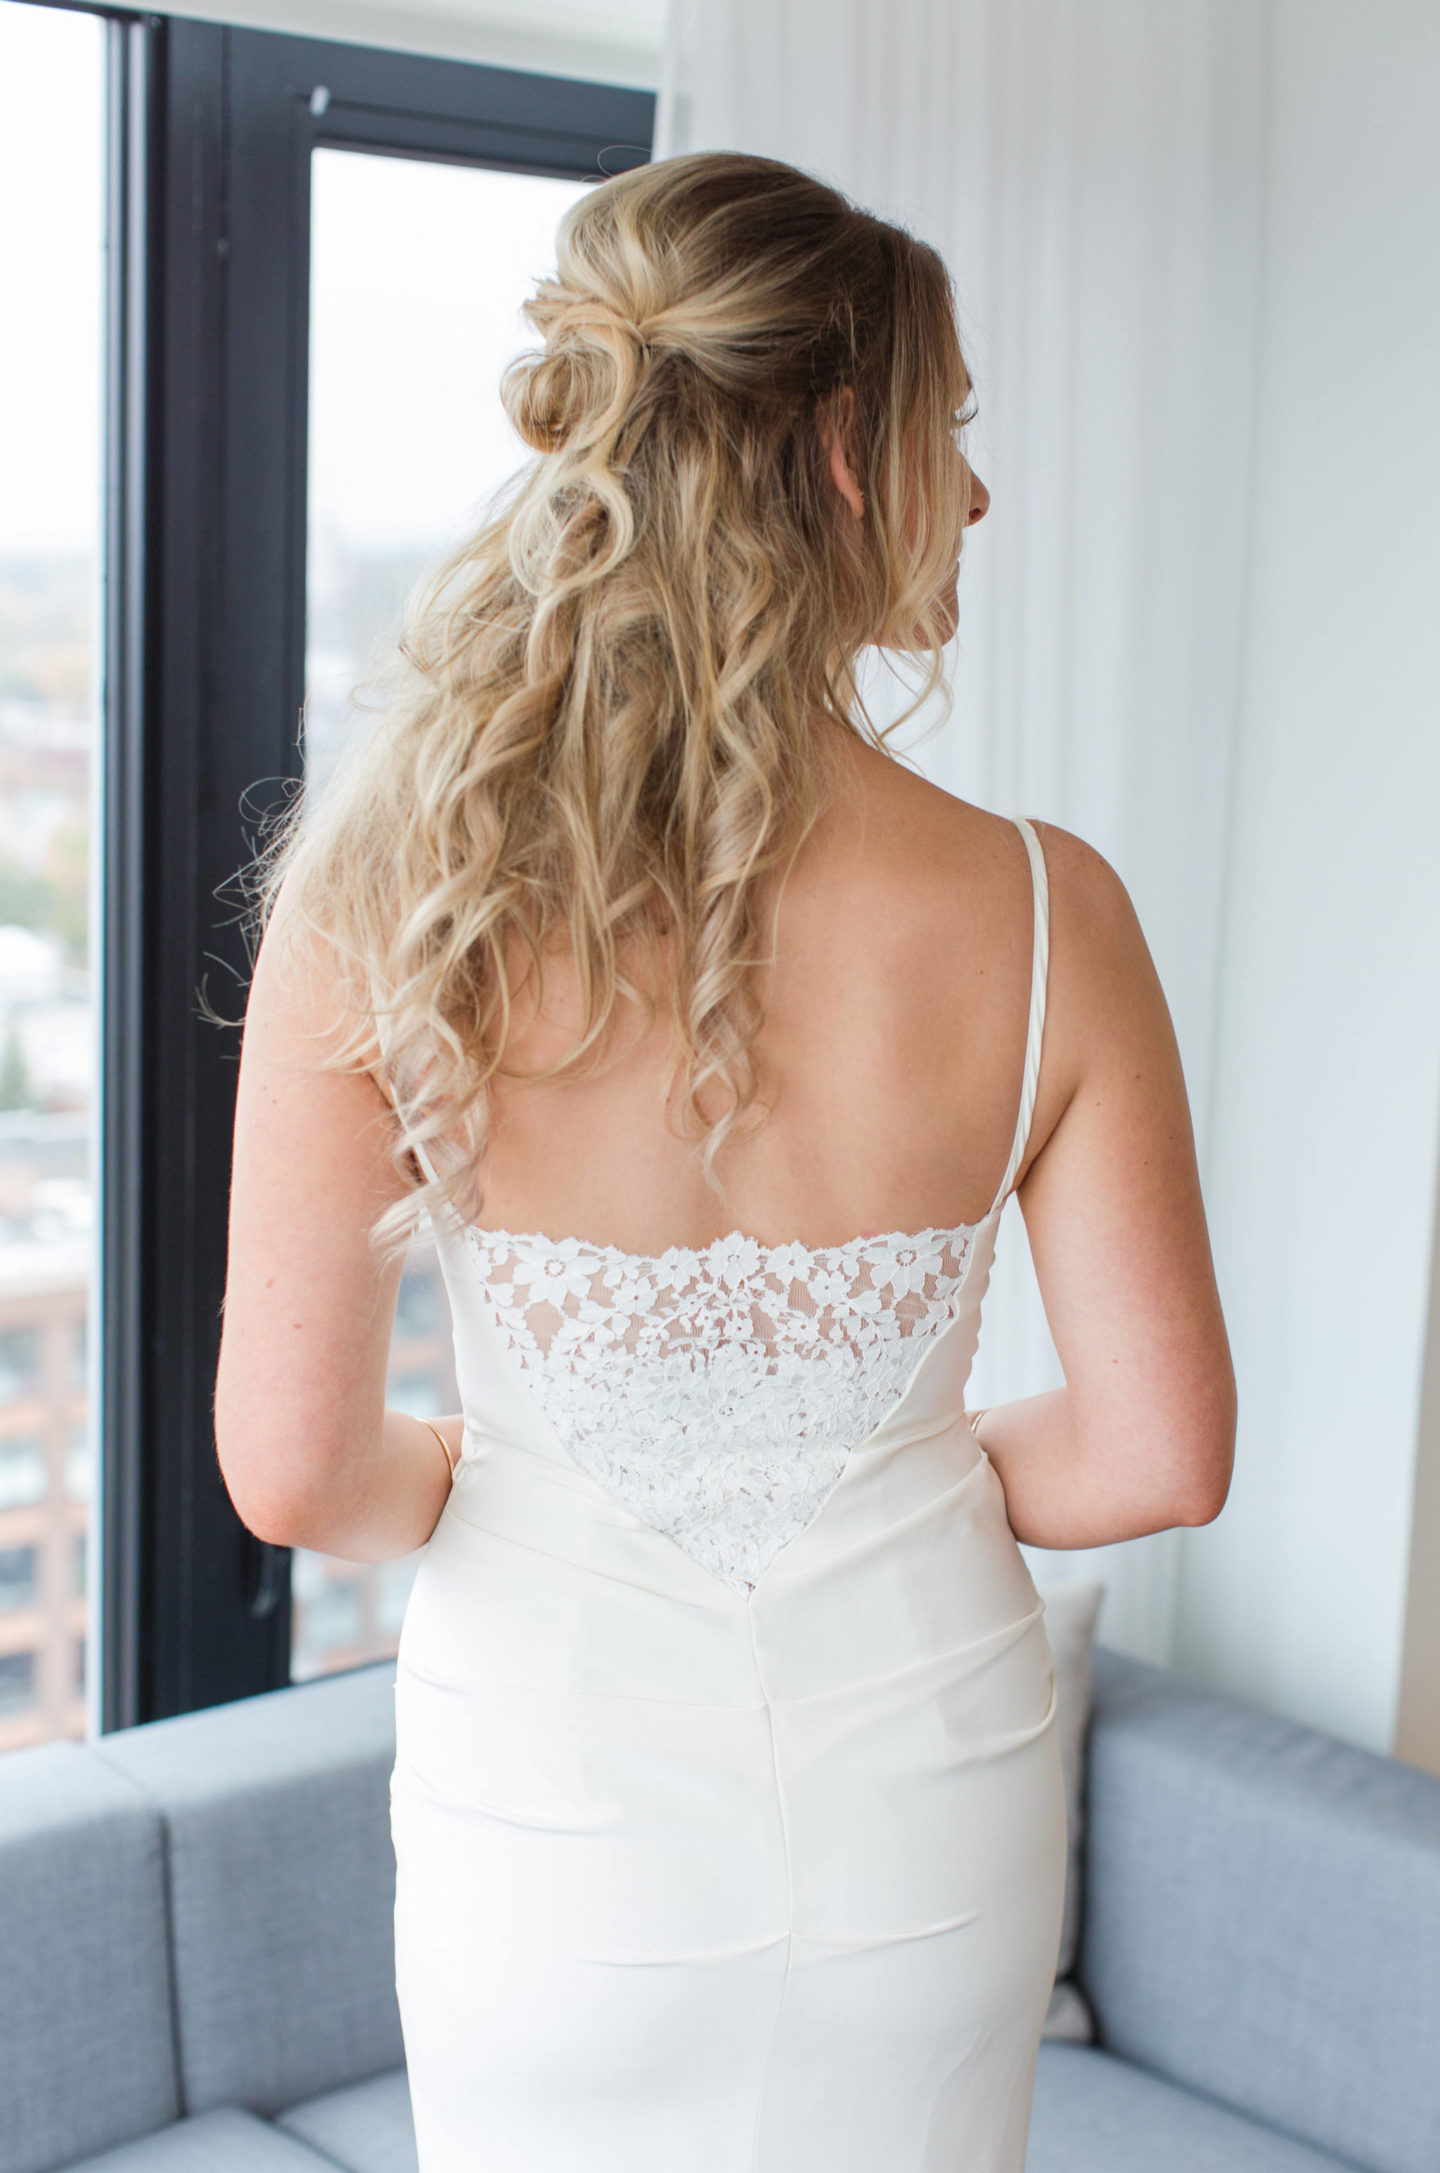 best wedding dress alterations Ottawa, bride in wedding dress with lace back